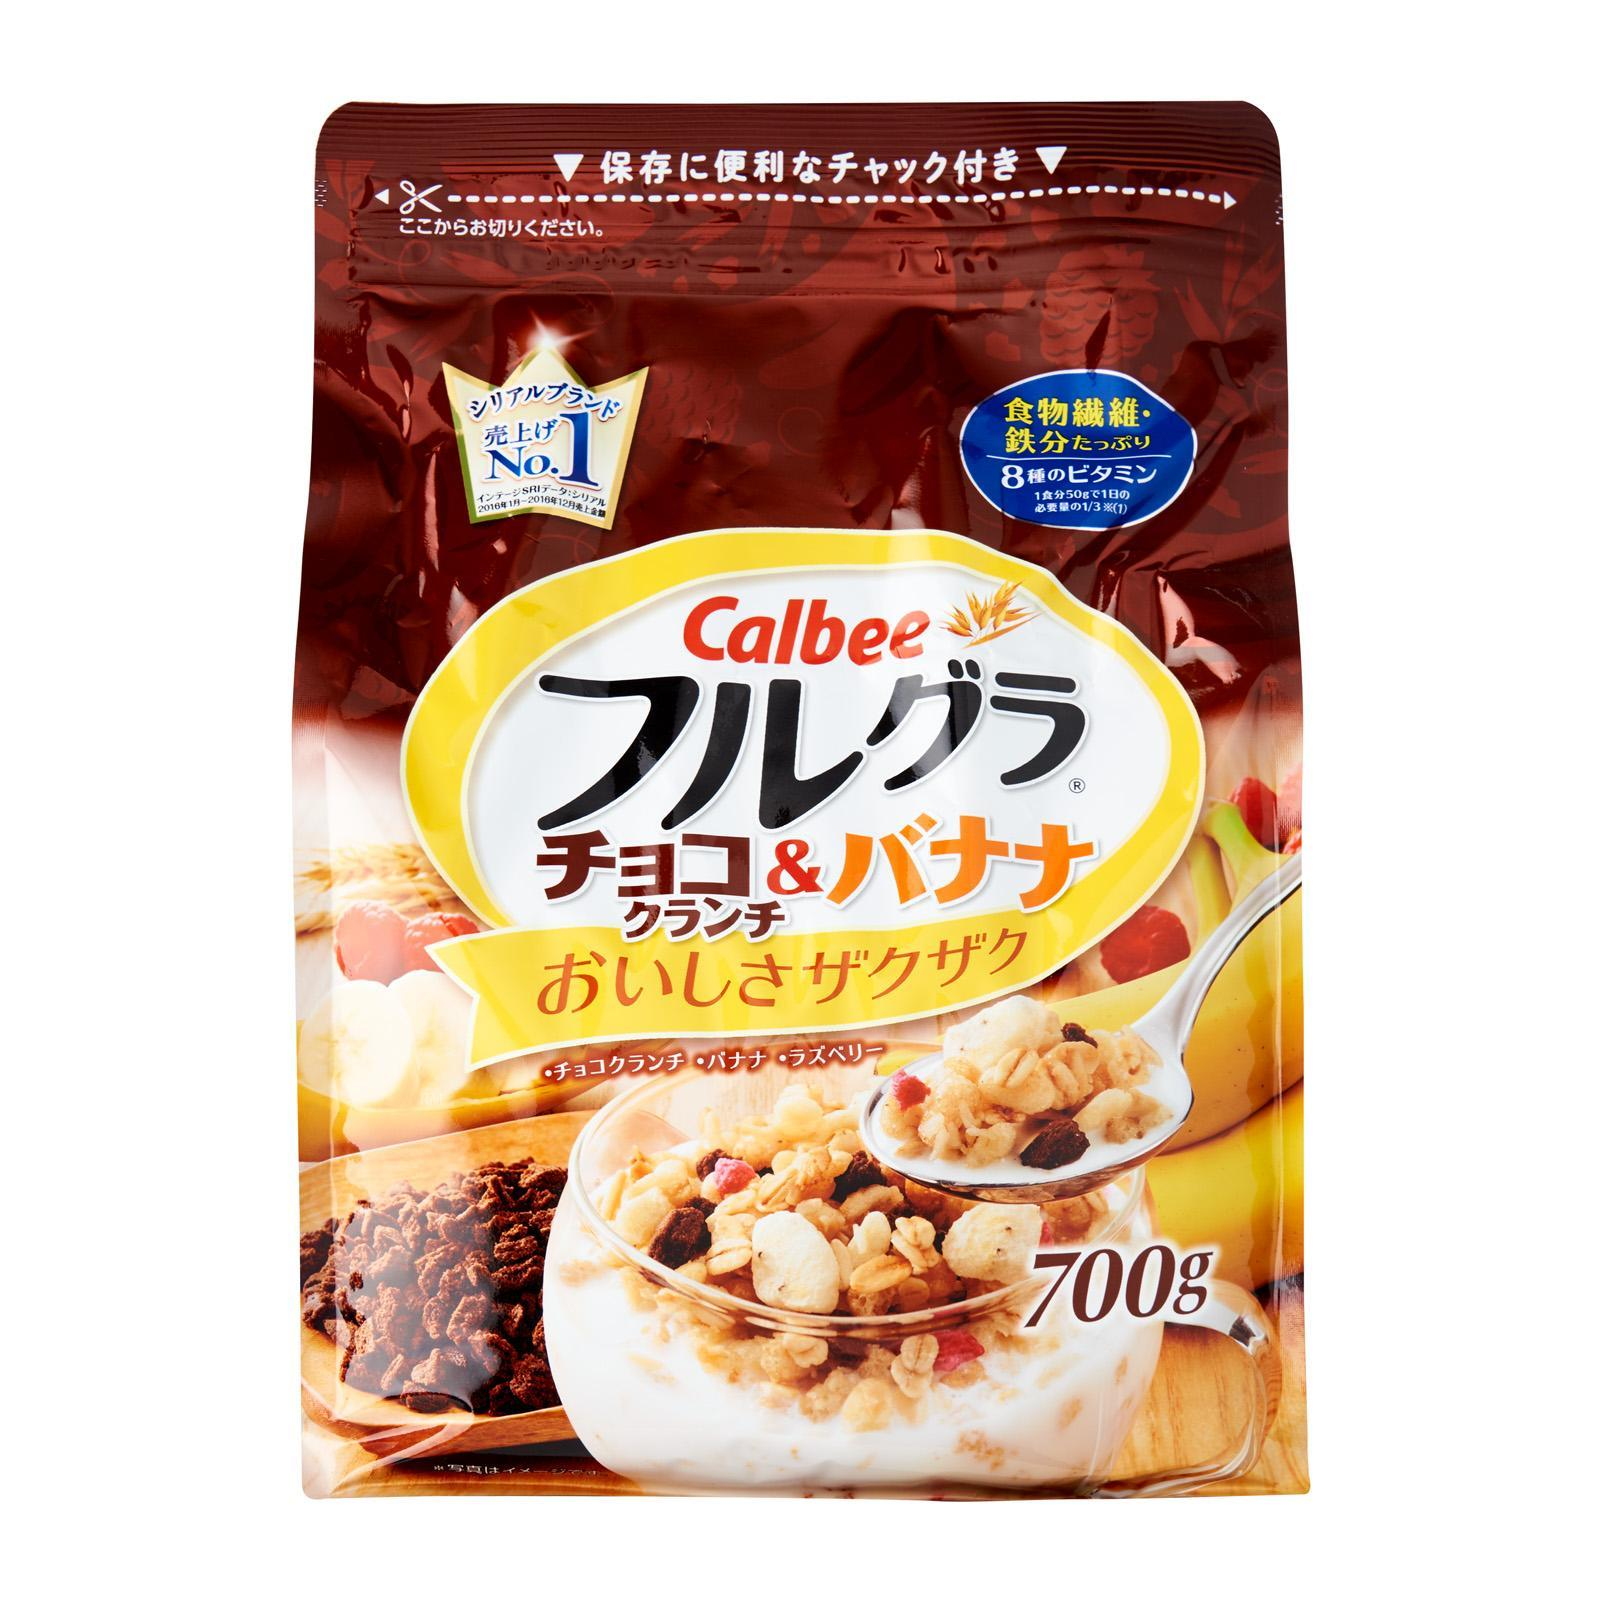 Calbee Crunchy Chocolate And Banana Fruits Granola